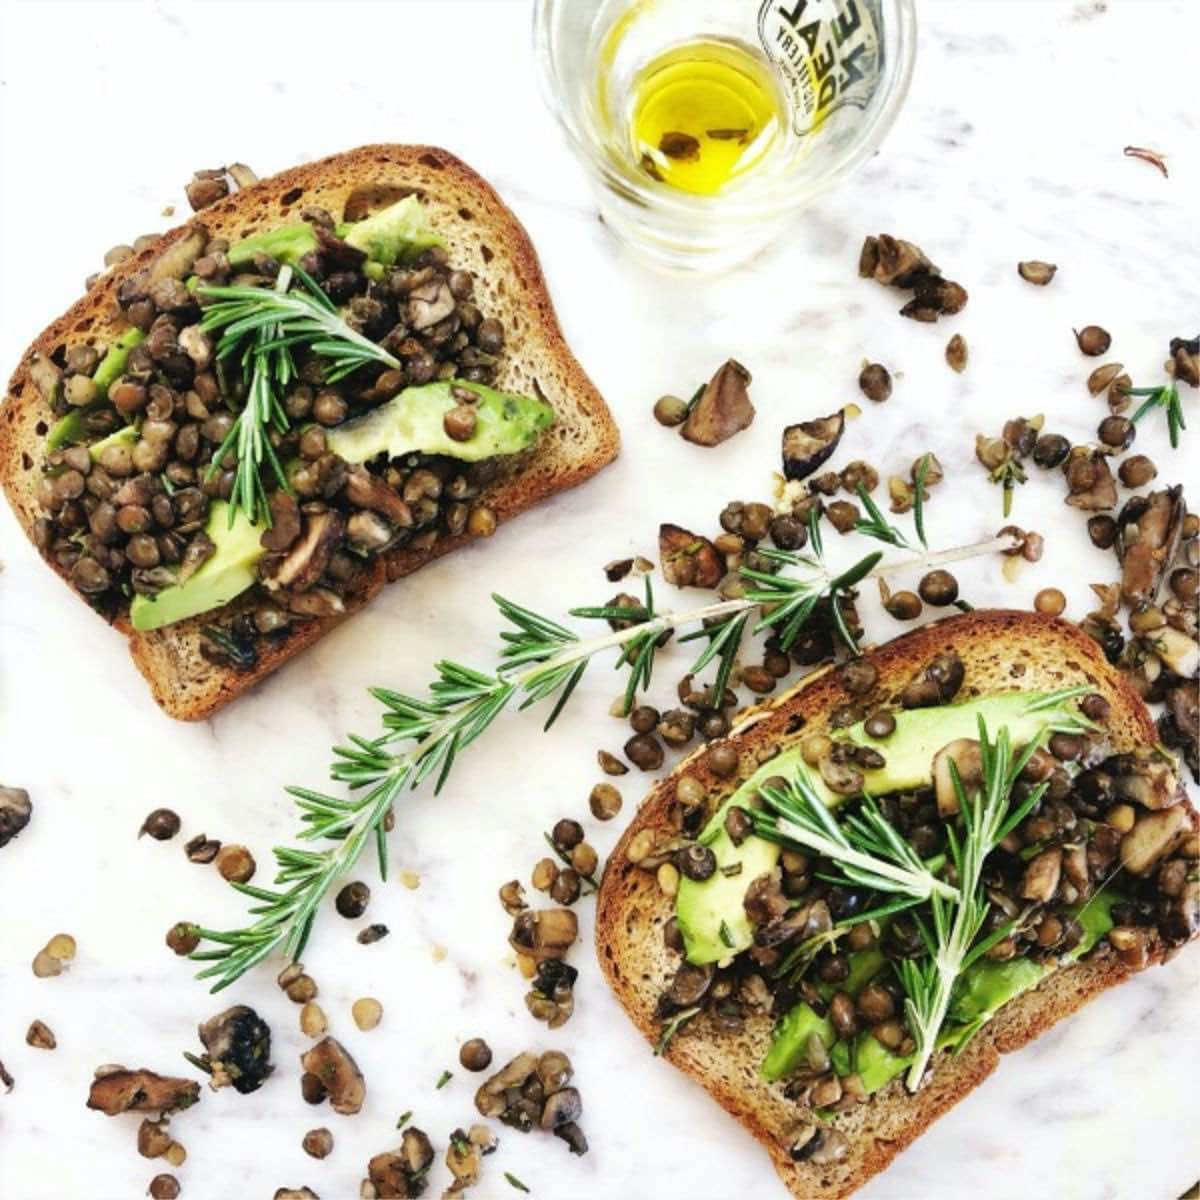 avocado toast with lentils, rosemary, and mushrooms on top of gluten free bread.